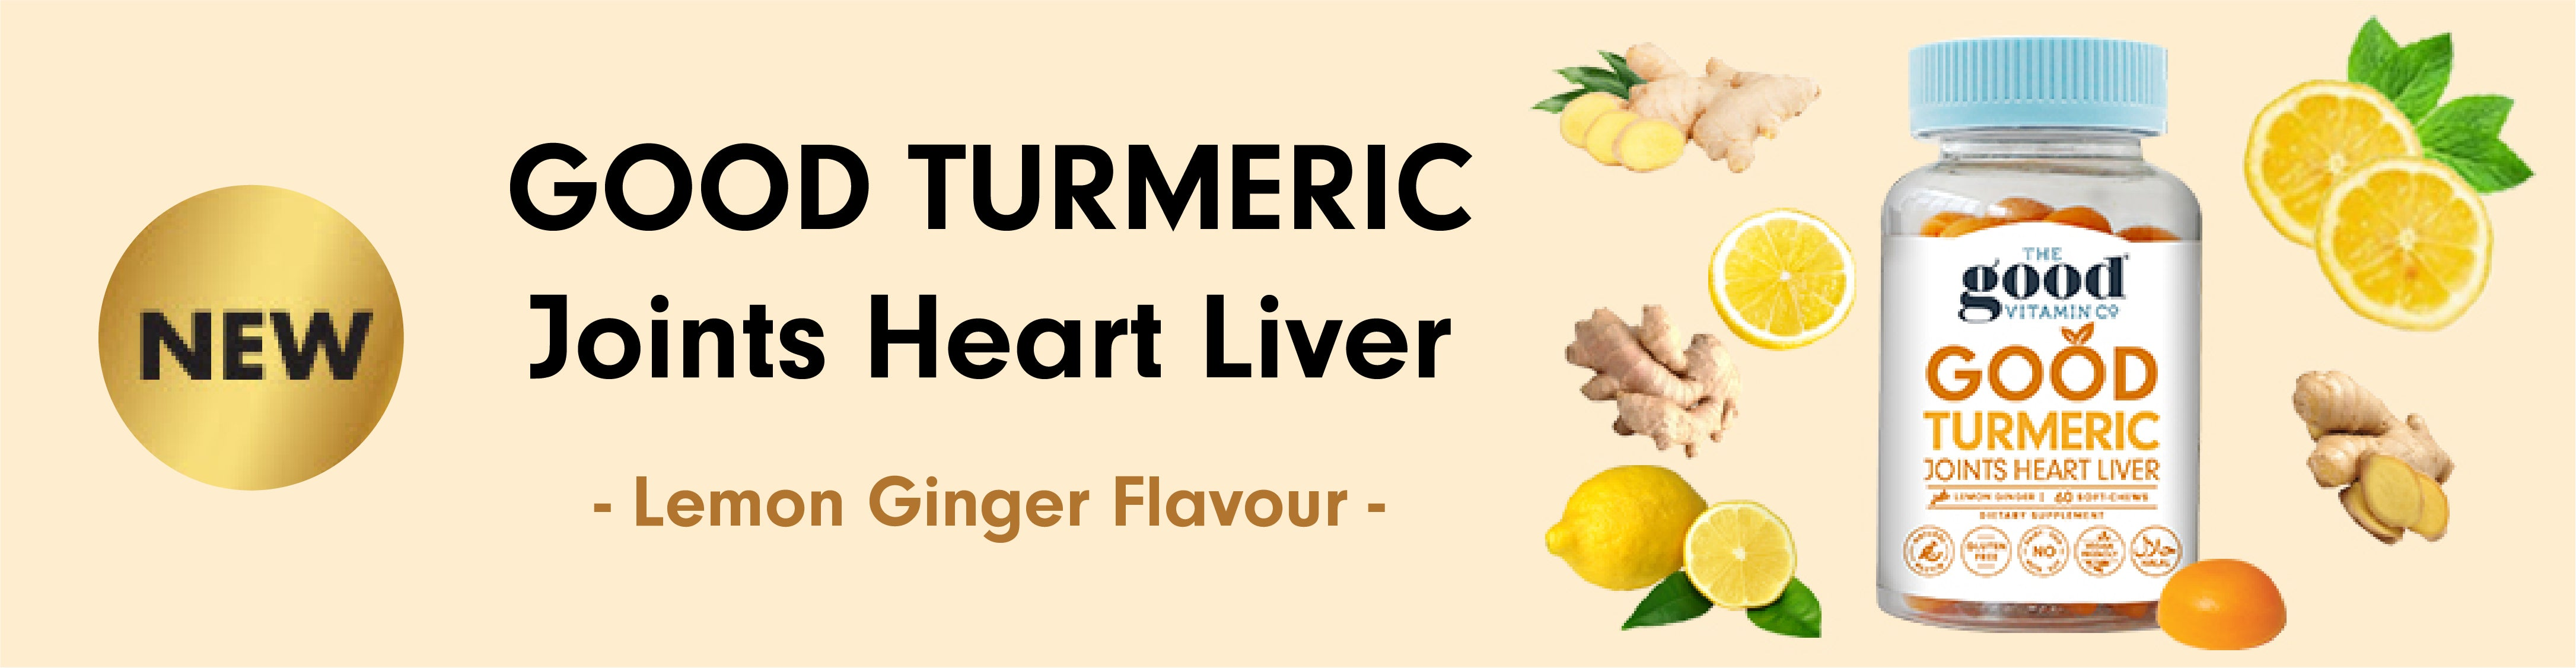 NEW PRODUCT! Good Turmeric - Joints Heart Liver